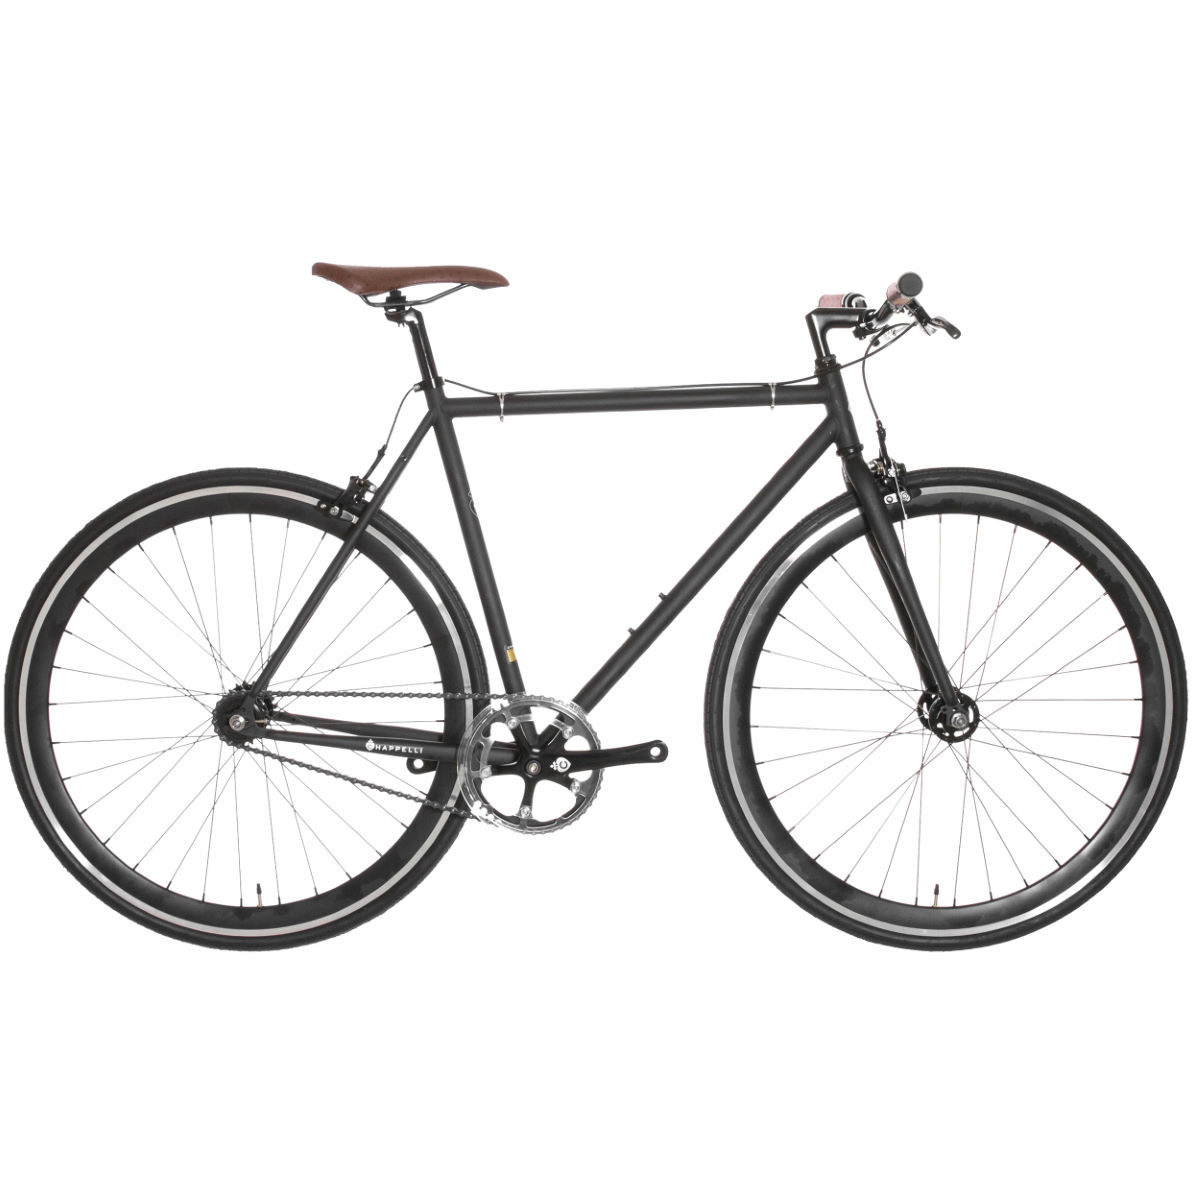 Vélo Chappelli Modern Single Speed (2016) - 50cm Noir/Noir Single speed